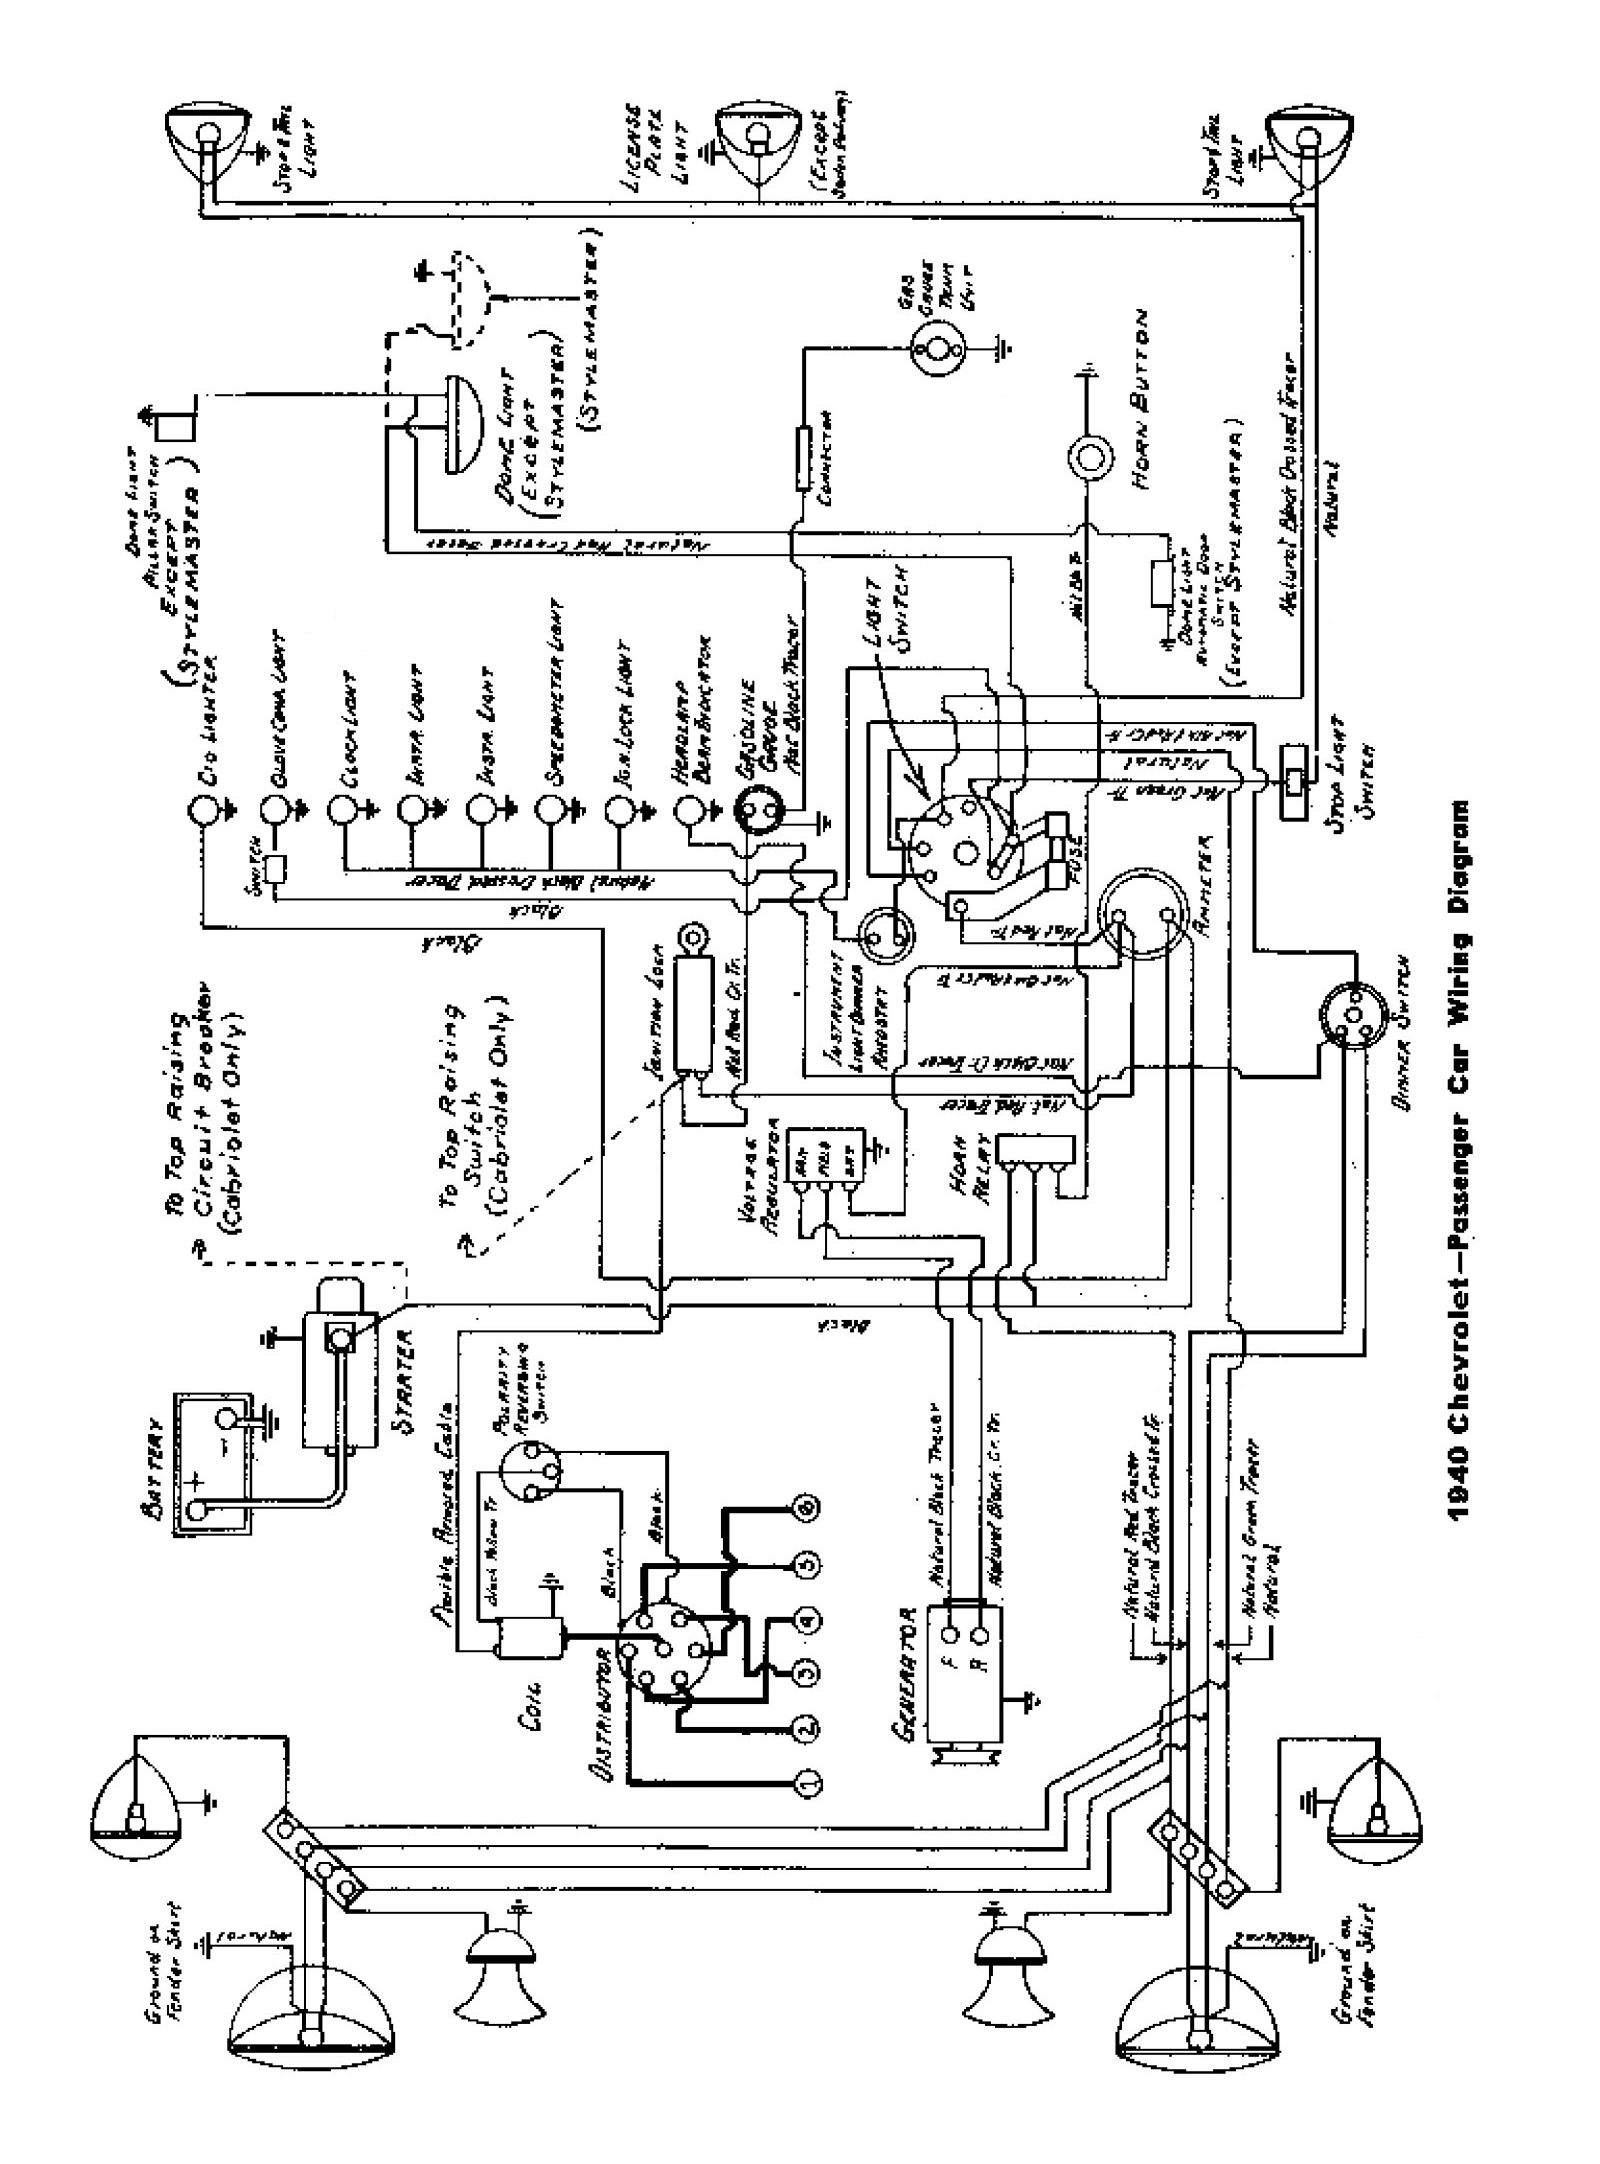 Chevy Wiring Diagrams. 1940 Passenger Car Wiring. GM. 2004 GMC Wiring Diagrams Free Horn At Scoala.co